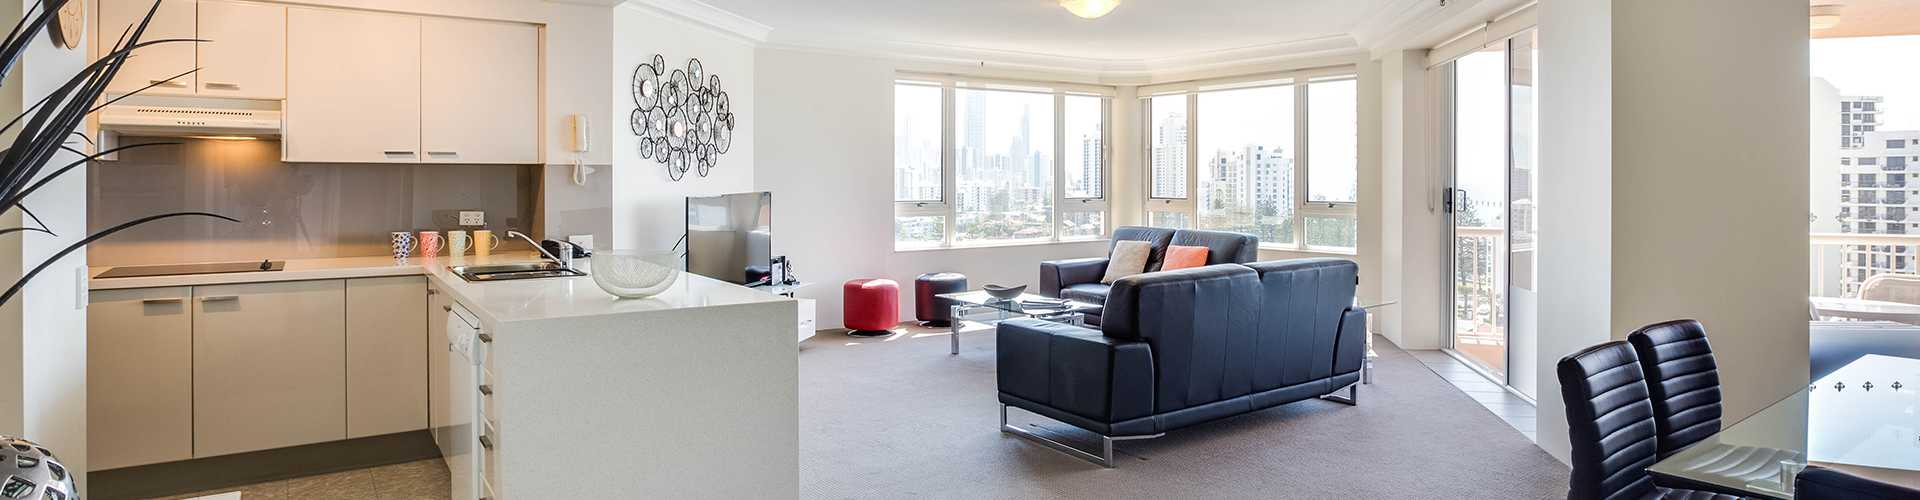 2 Bed Bedroom two bedroom | premiere apartments | gold coast | belle maison